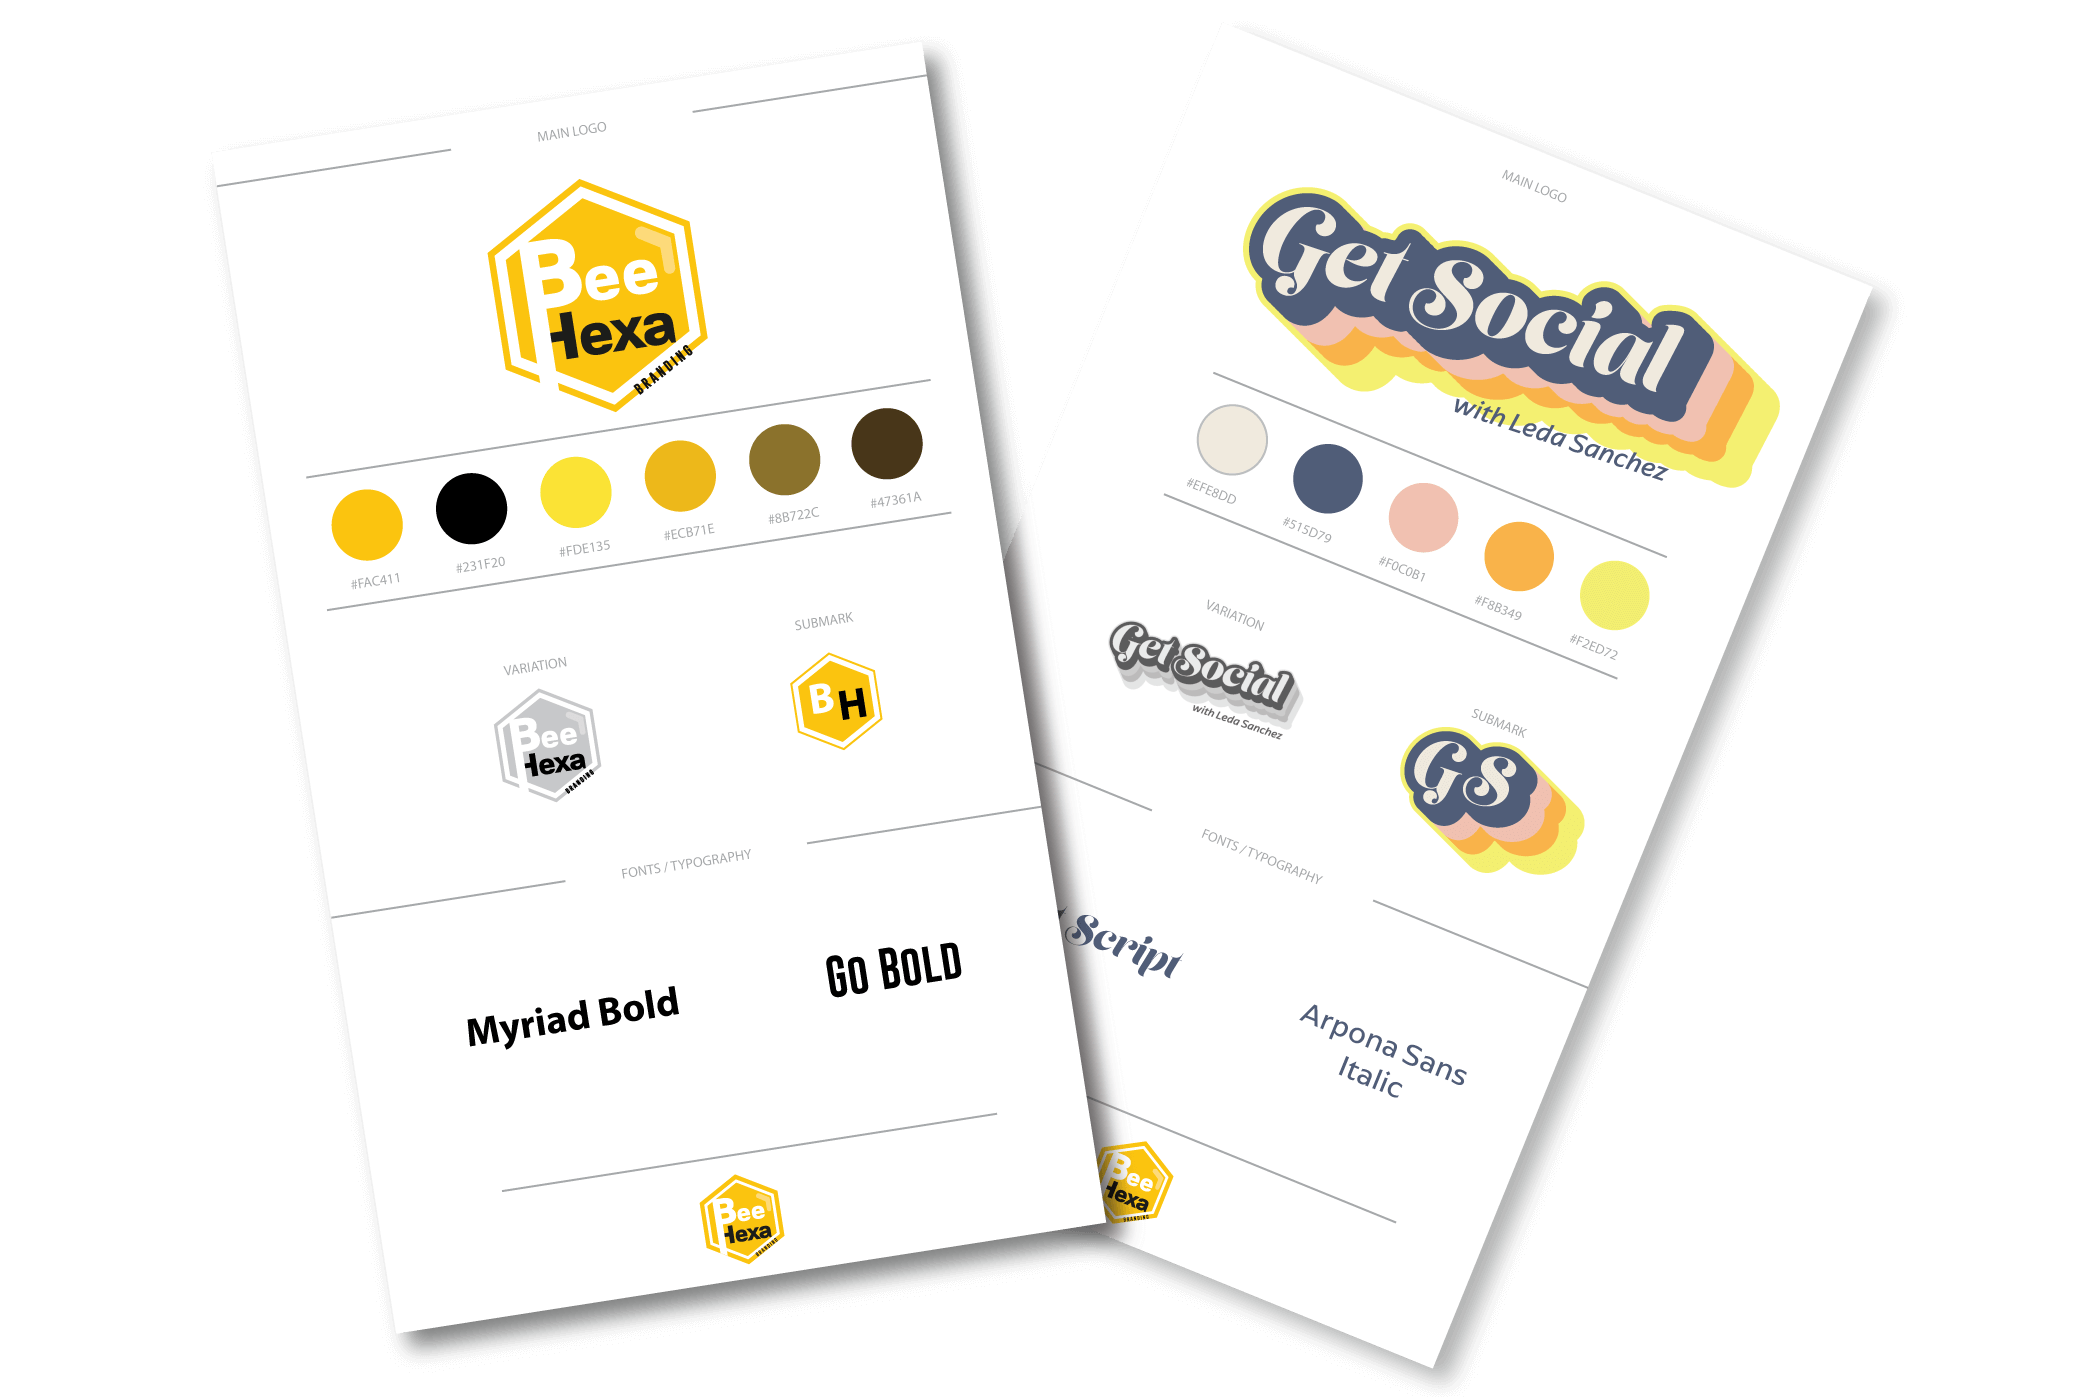 2 brand sheets of 2 different logos and brands